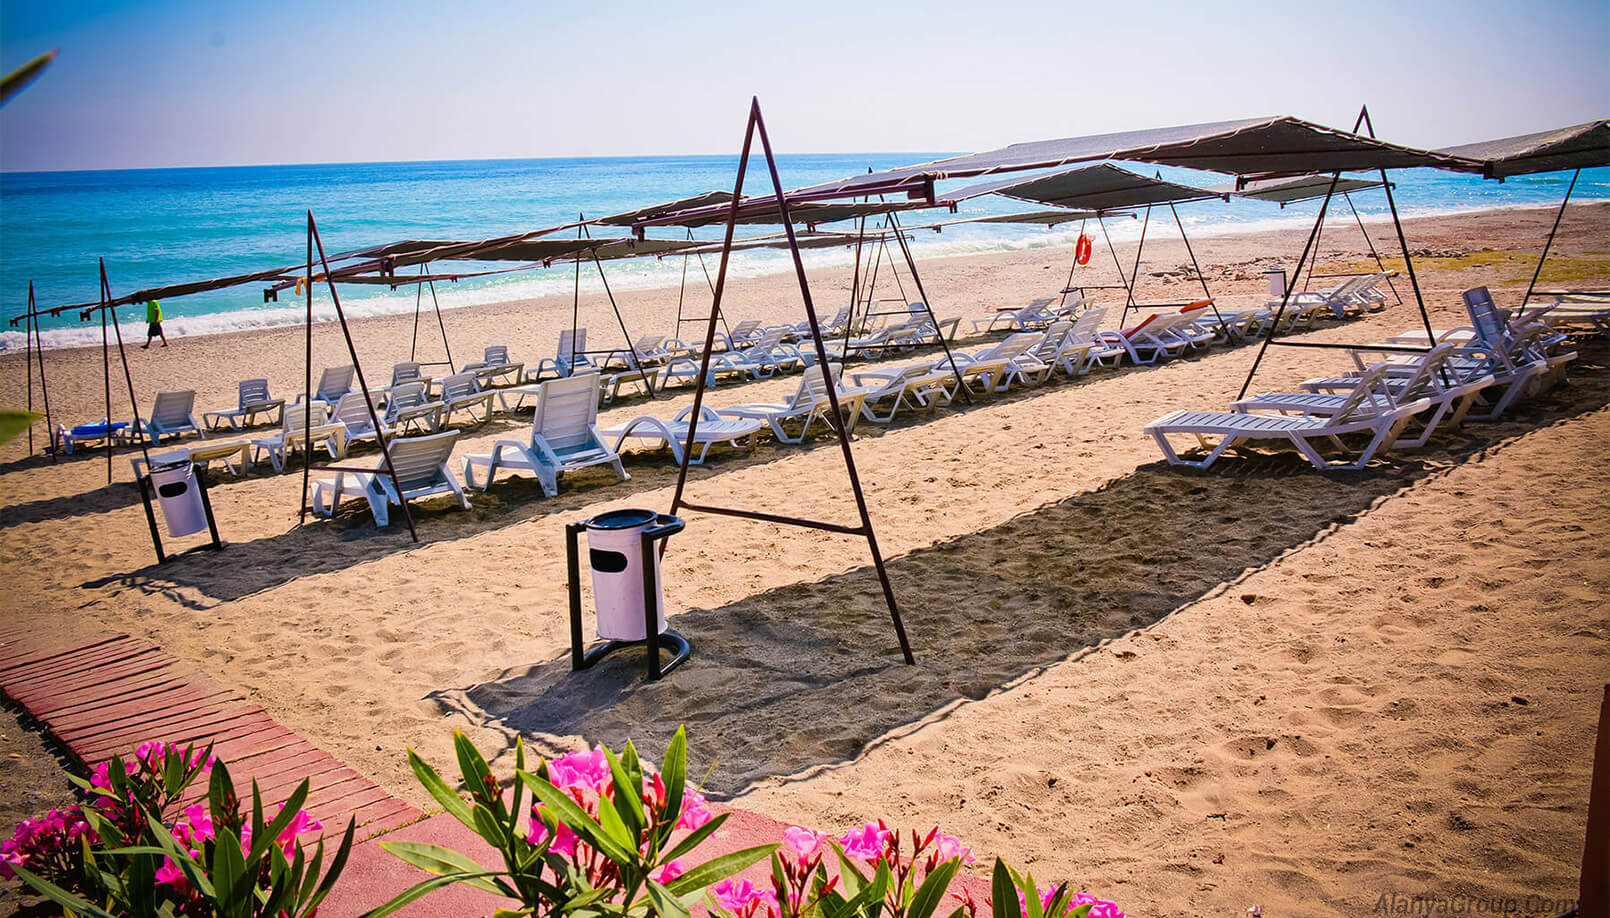 Antalya summer vacation beach